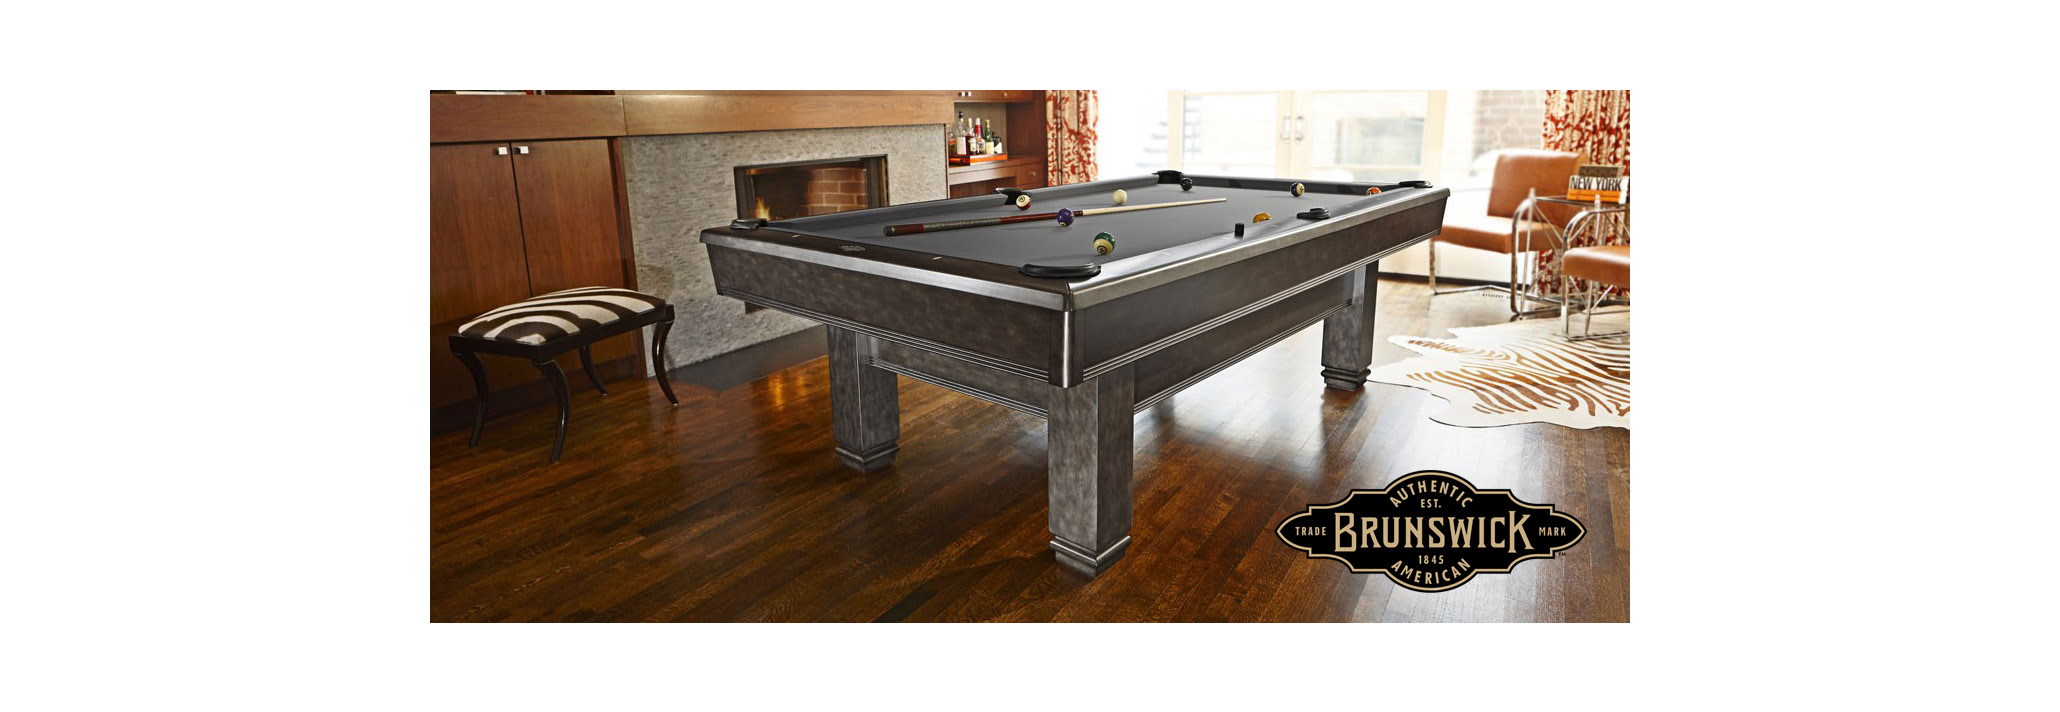 The Pool Table Store - Pool table retailers near me